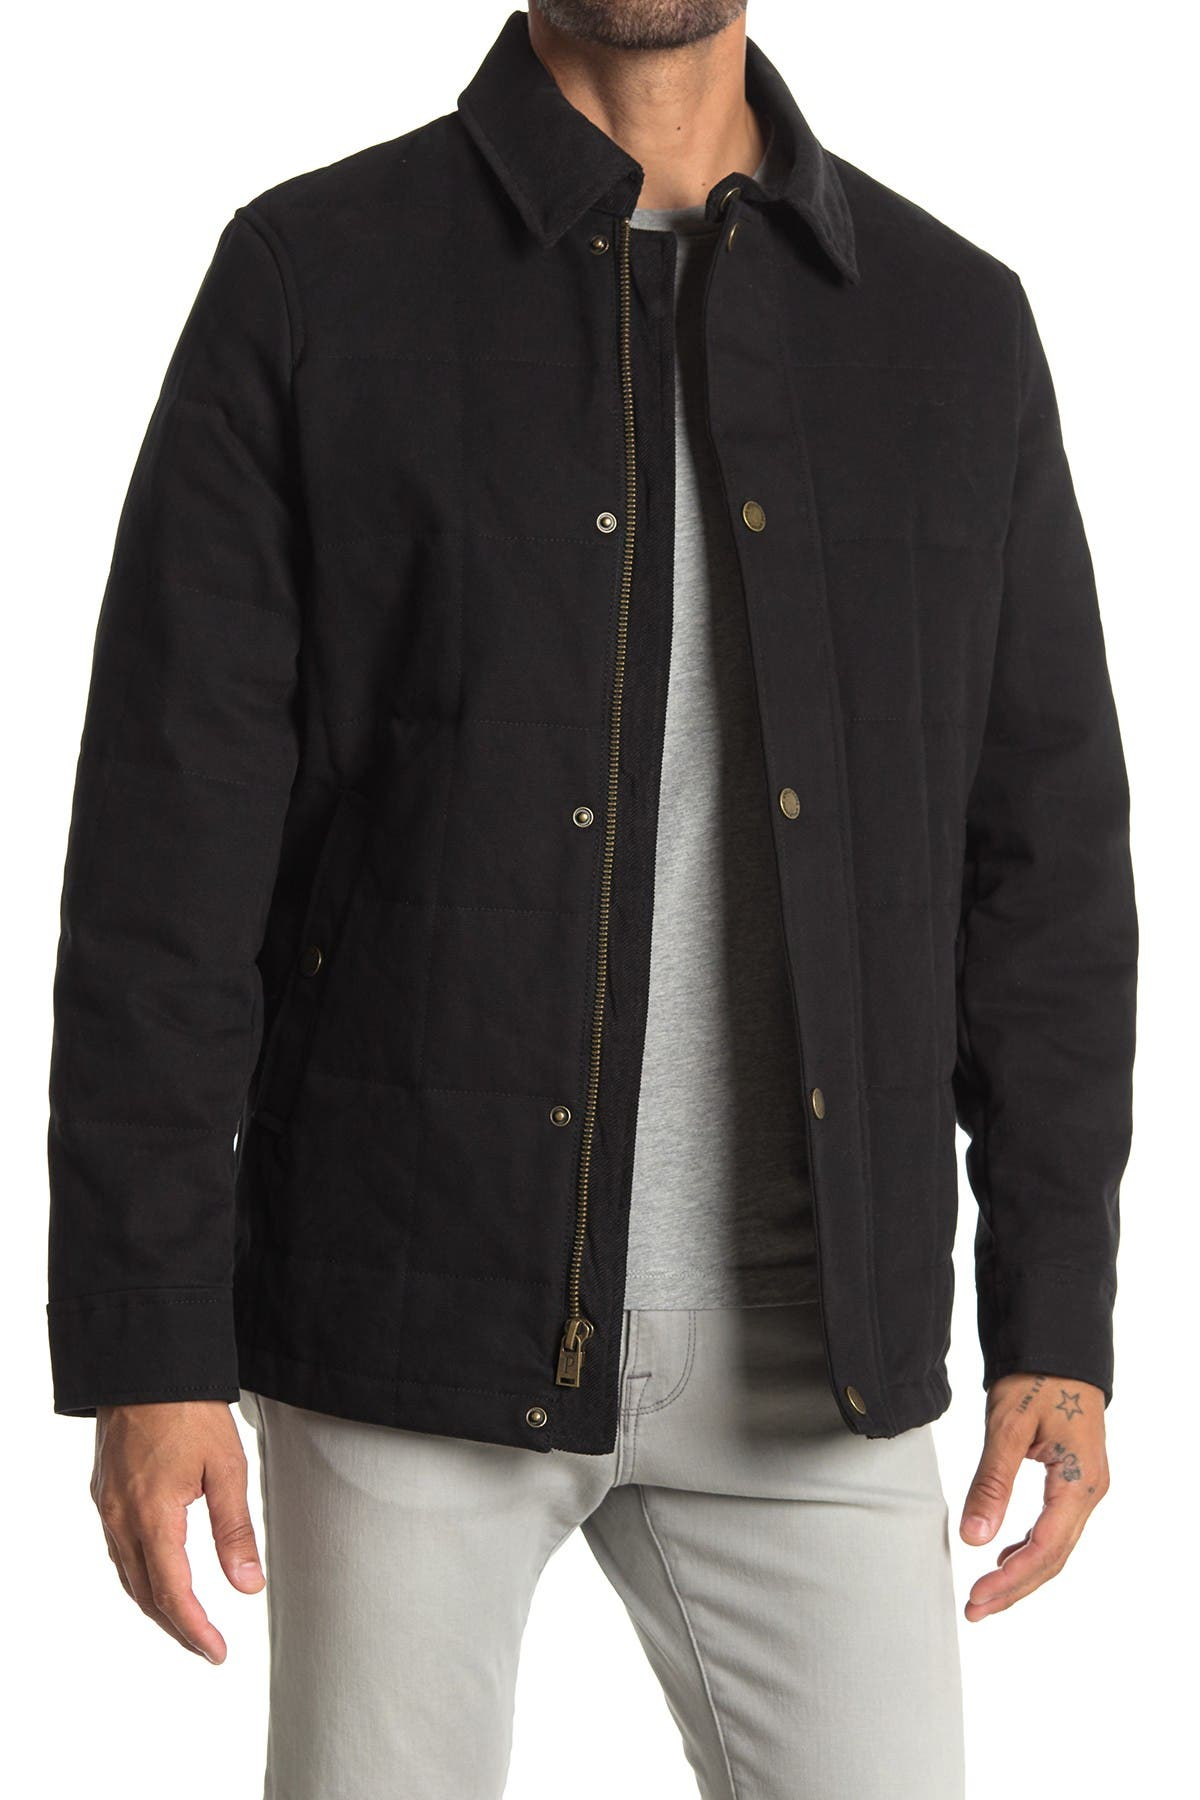 Image of PENDLETON Piedmont Jacket